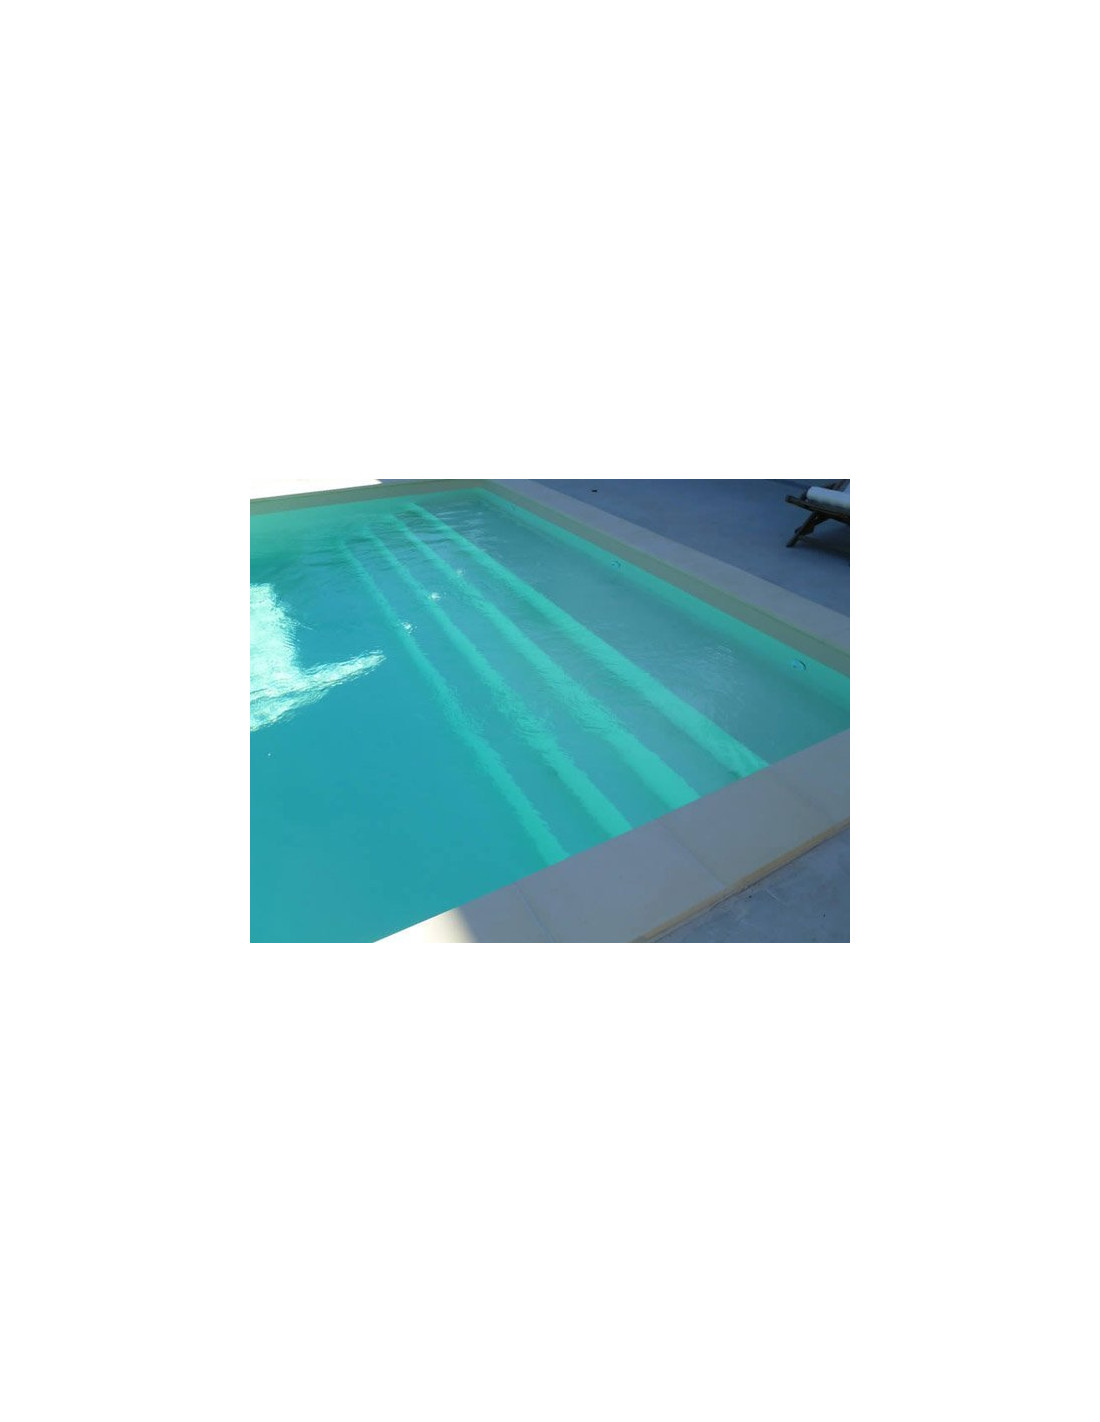 Kit piscine enterr e avec escalier modulo for Piscine en kit enterree